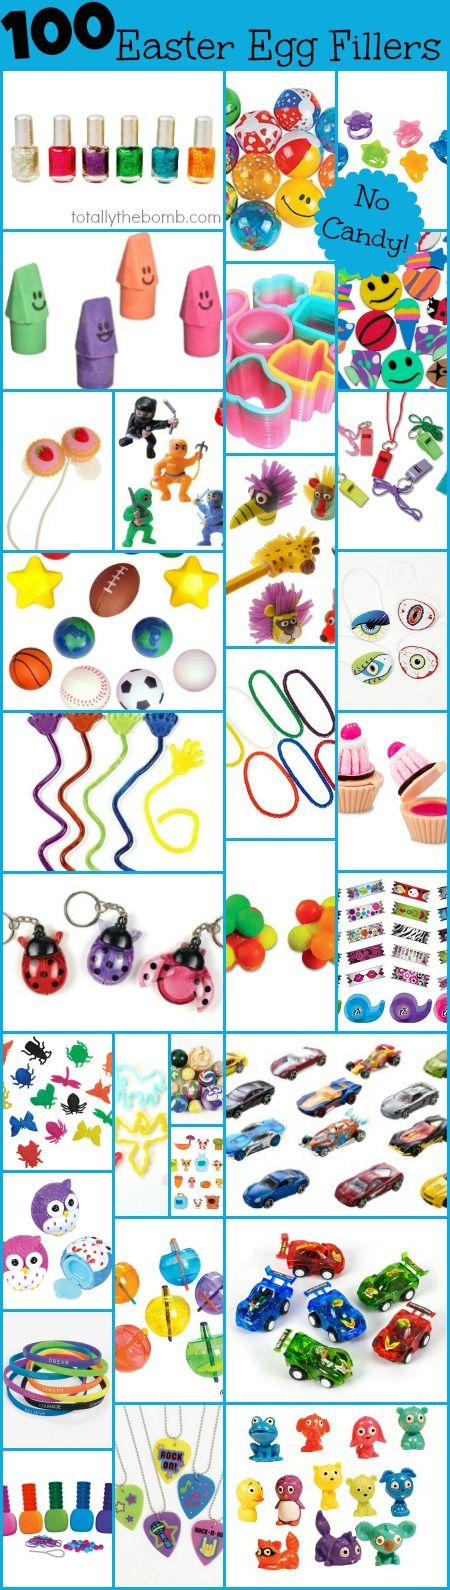 24PCS Mini Community People Easter Egg Hunt Easter Party Favors Gifts for Kids Boys Girls Toddlers Easter Basket Stuffers 24PCS Easter Eggs Easter Eggs with Toys Inside